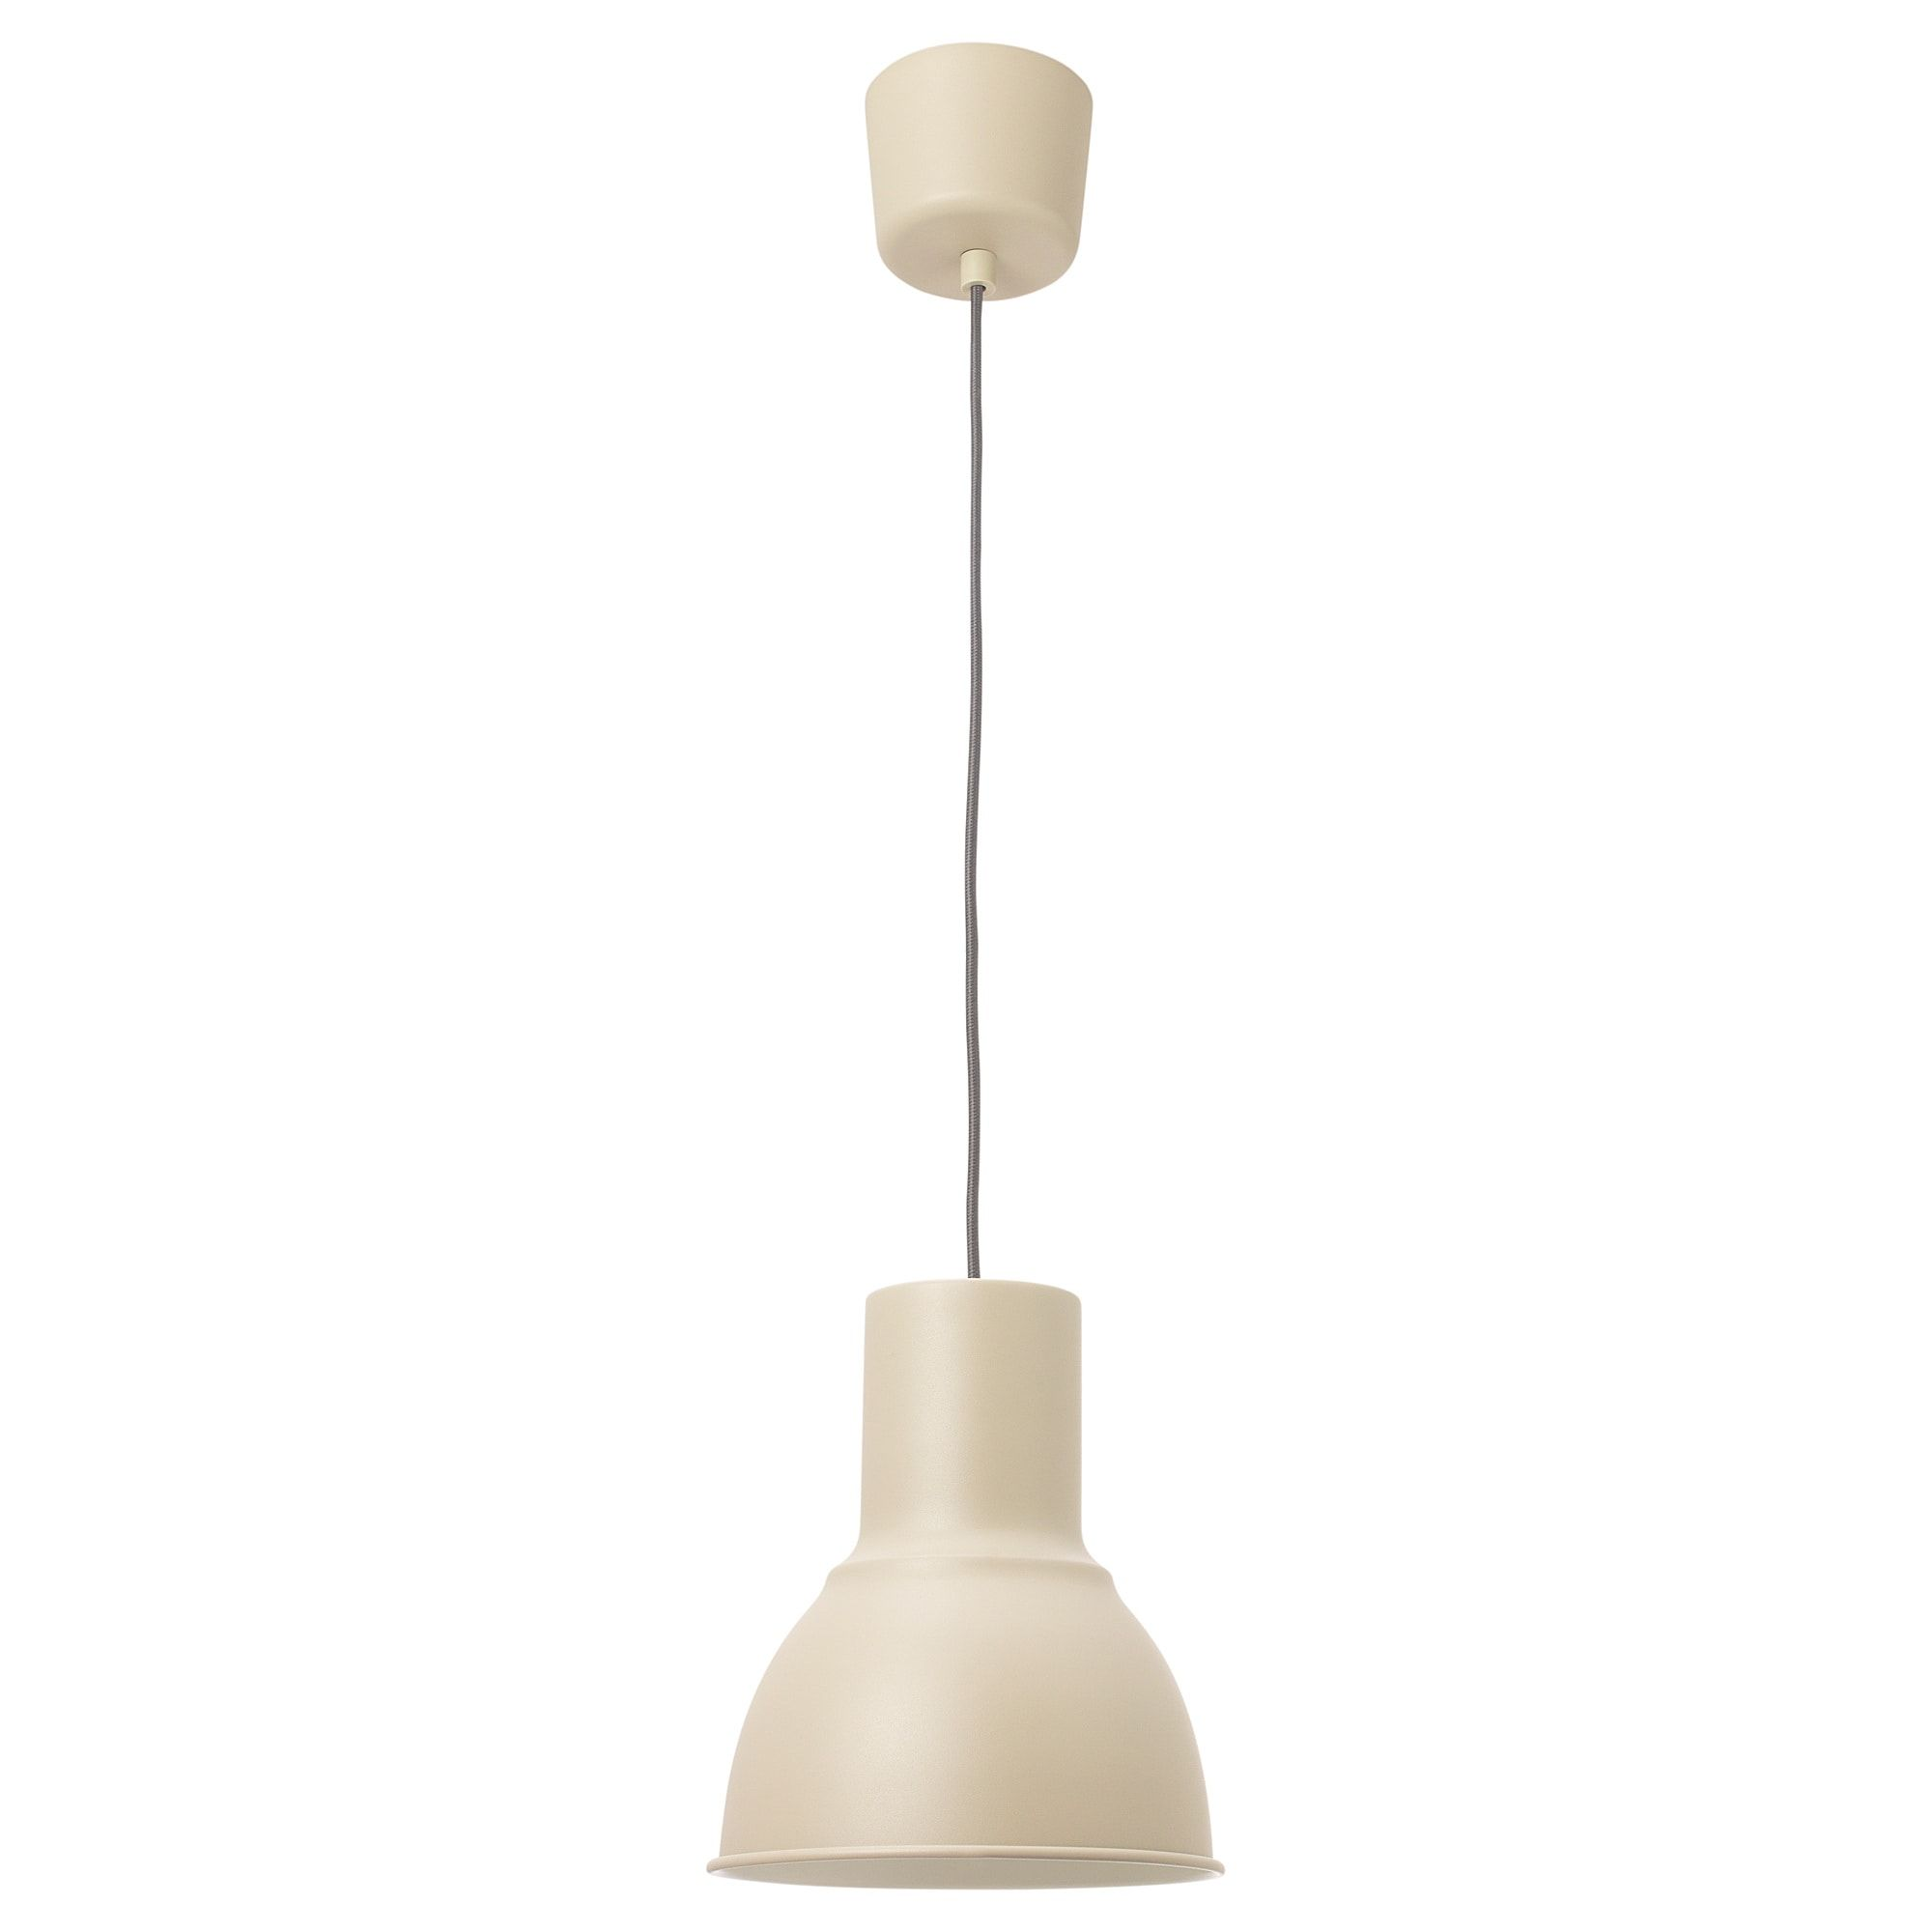 Ikea Hektar Pendant Lamp Beige This Lamp Gives A Pleasant